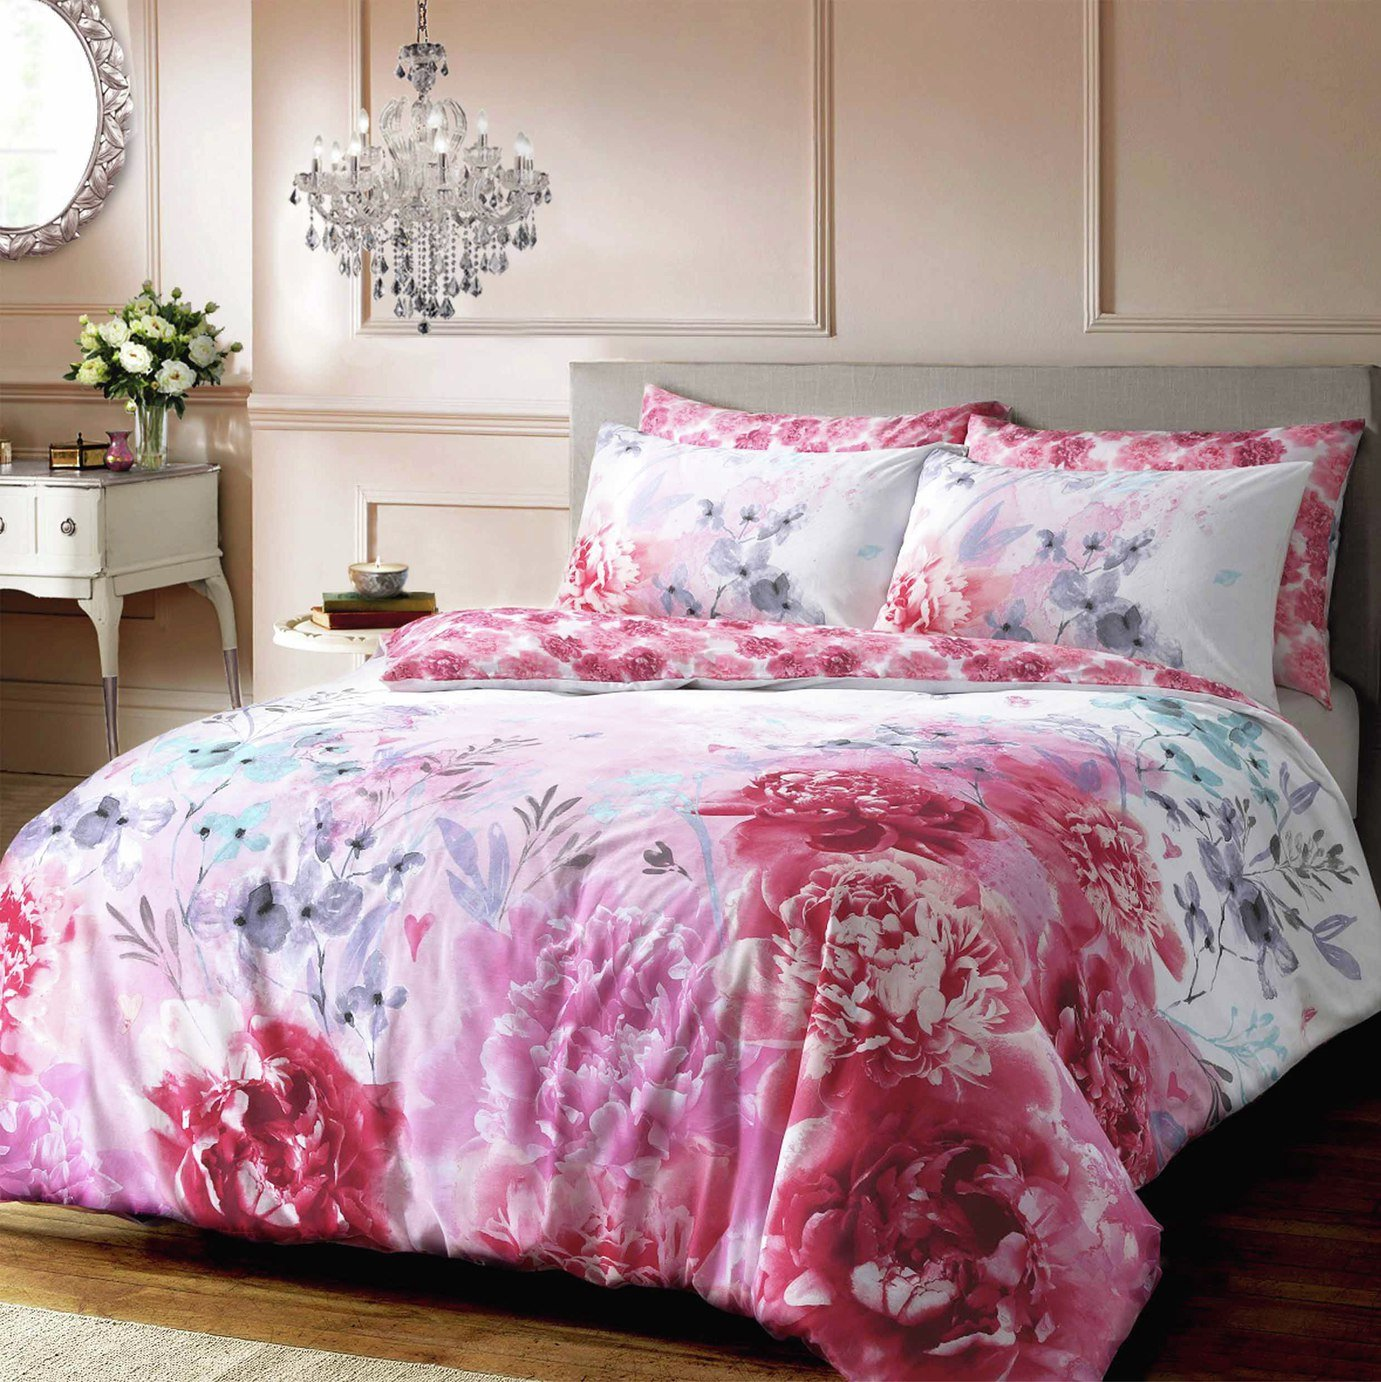 Pieridae Pink Bold Painted Floral Bedding Set - Kingsize